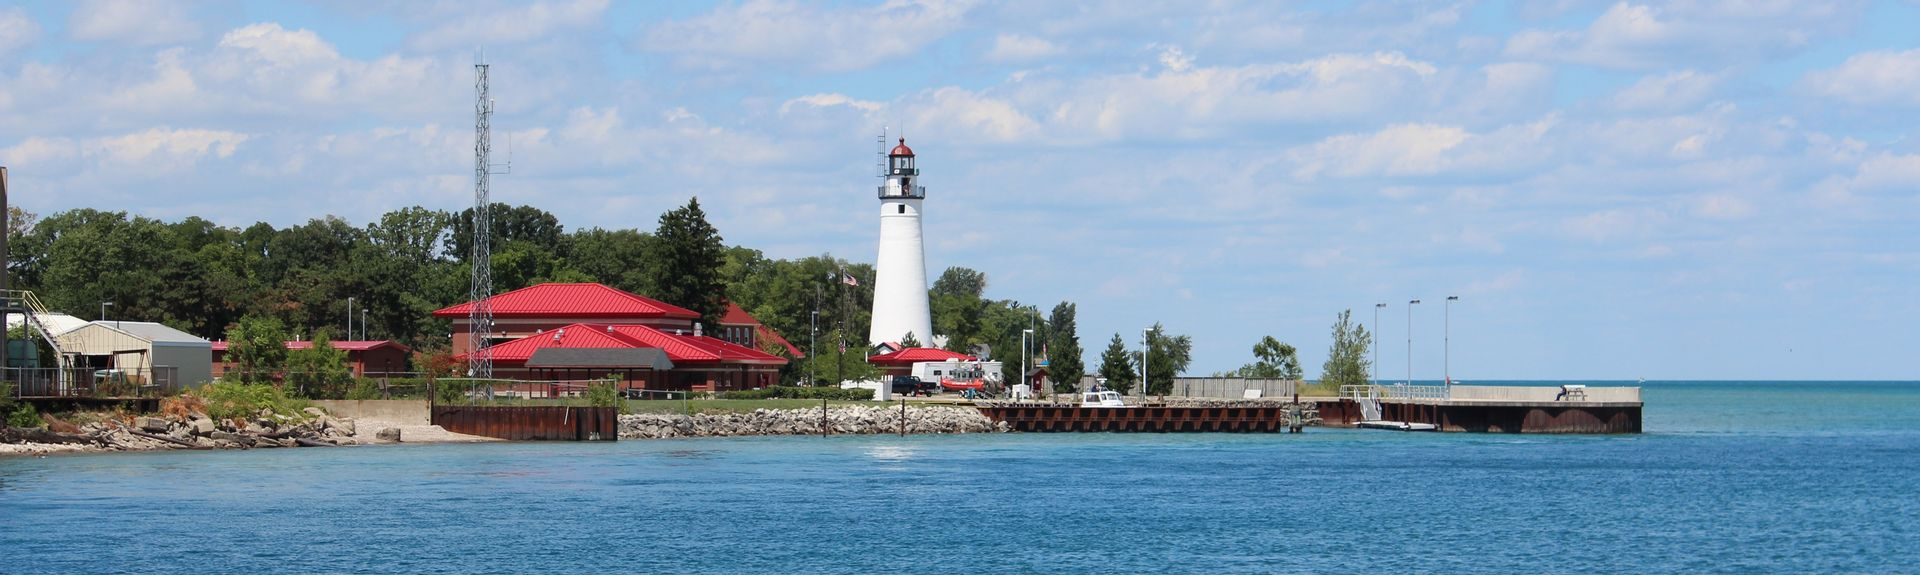 Port Huron, Michigan, United States of America